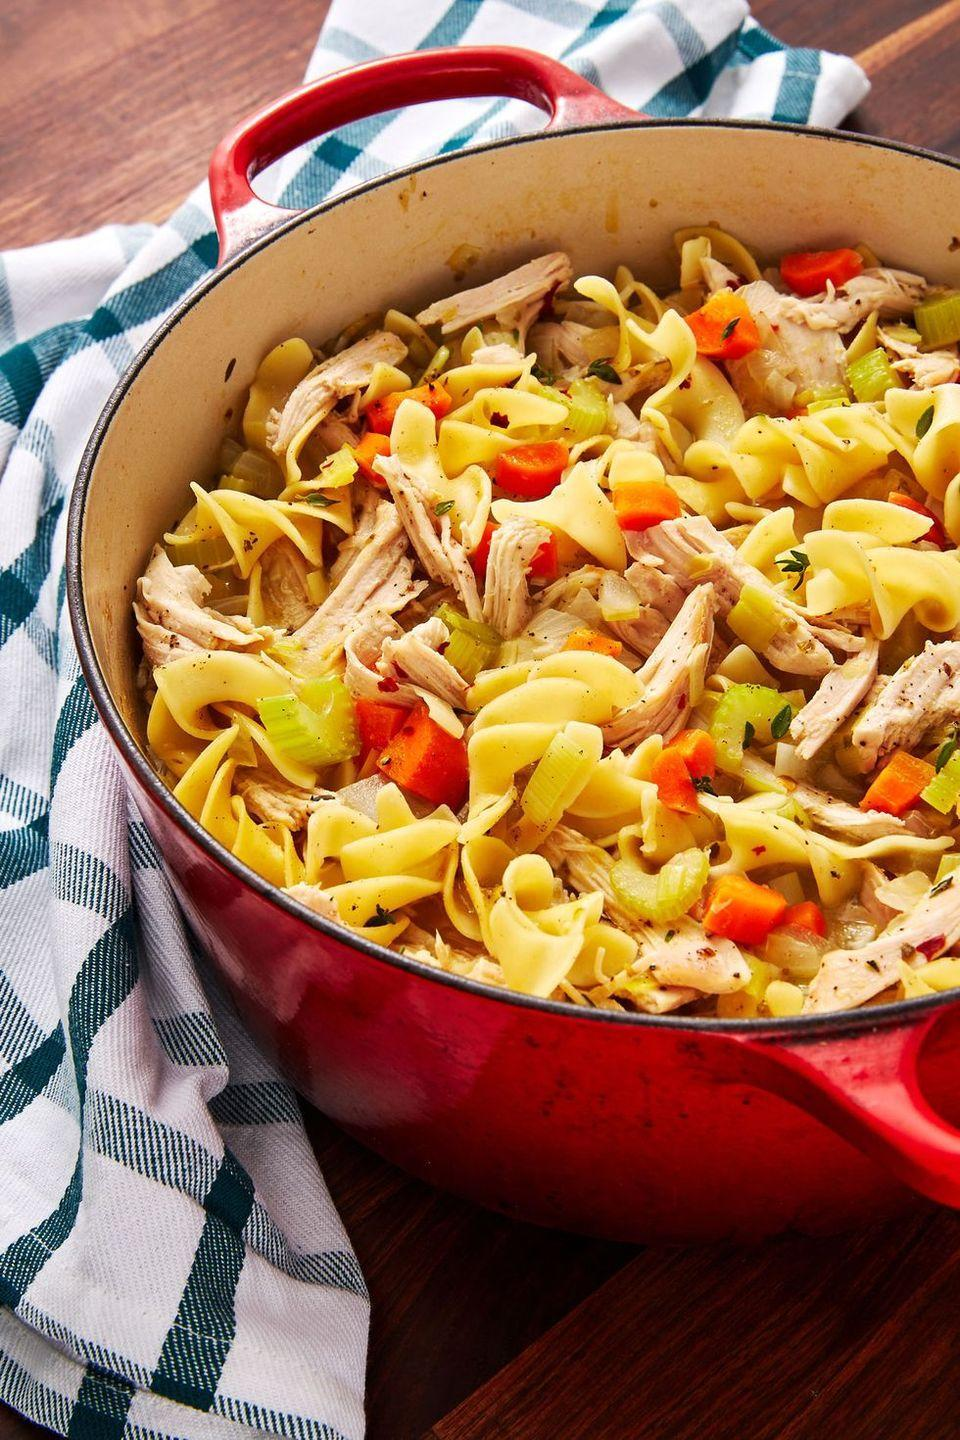 """<p>The easiest way to use up leftover turkey is to turn it into a comforting soup that will remind you of Grandma's.</p><p><em><a href=""""https://www.delish.com/cooking/recipe-ideas/a29089192/turkey-noodle-soup-recipe/"""" rel=""""nofollow noopener"""" target=""""_blank"""" data-ylk=""""slk:Get the recipe from Delish »"""" class=""""link rapid-noclick-resp"""">Get the recipe from Delish »</a></em></p>"""